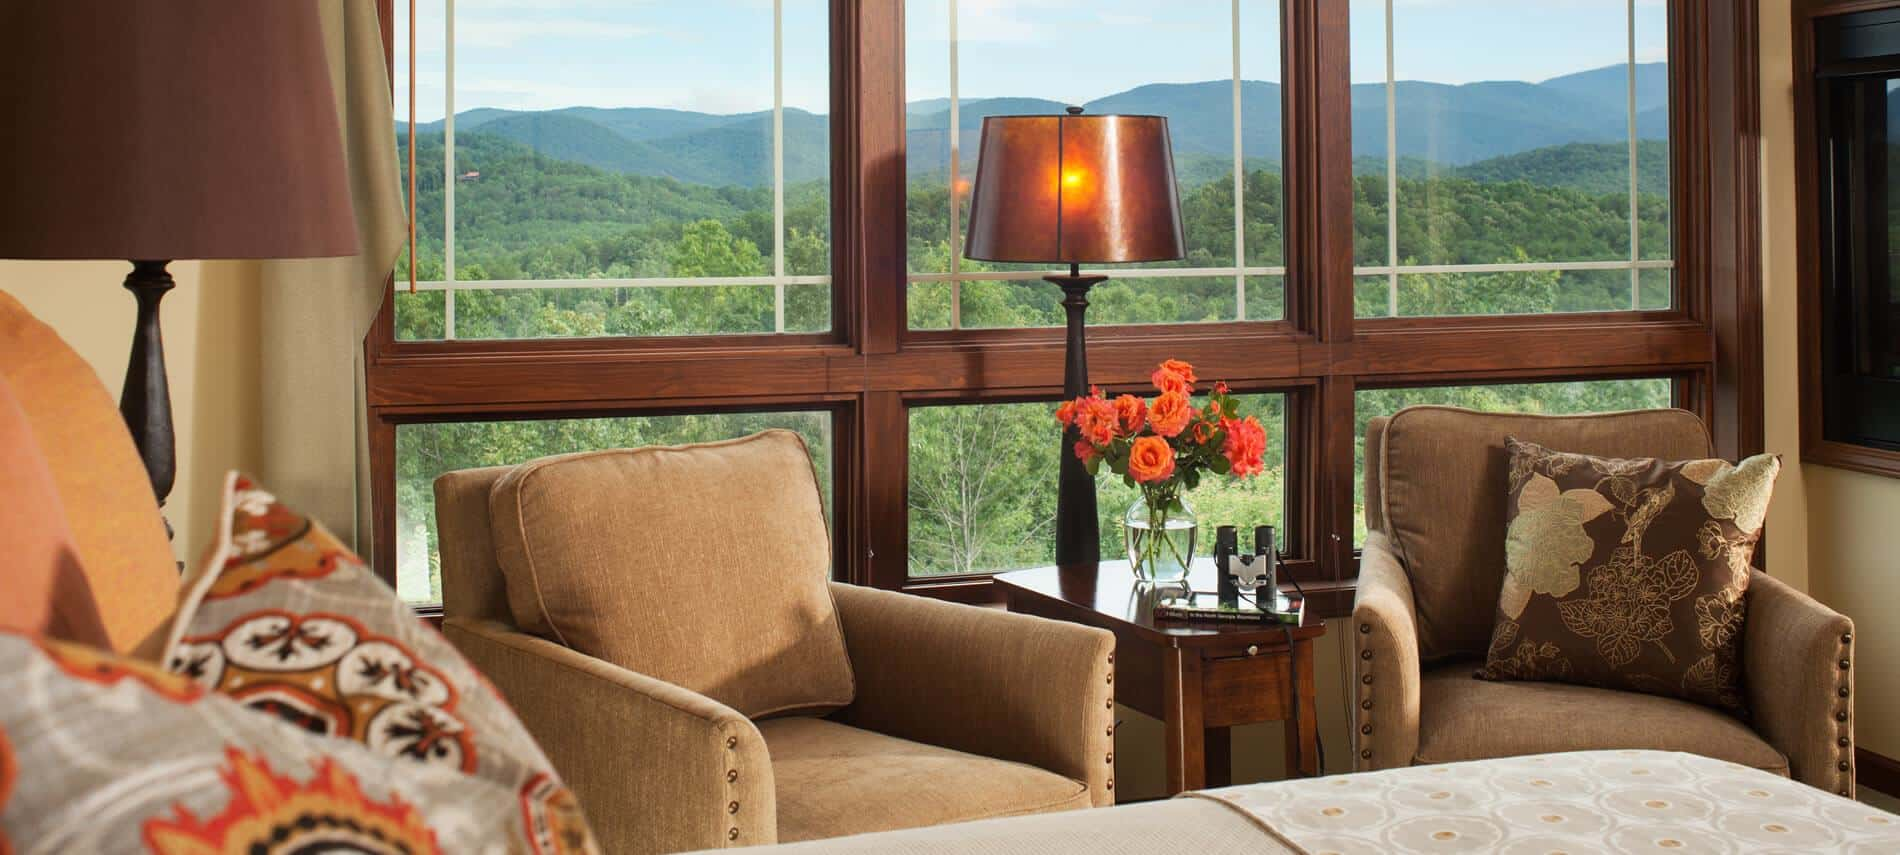 lucille's mountaintop inn & spa: a georgia bed and breakfast